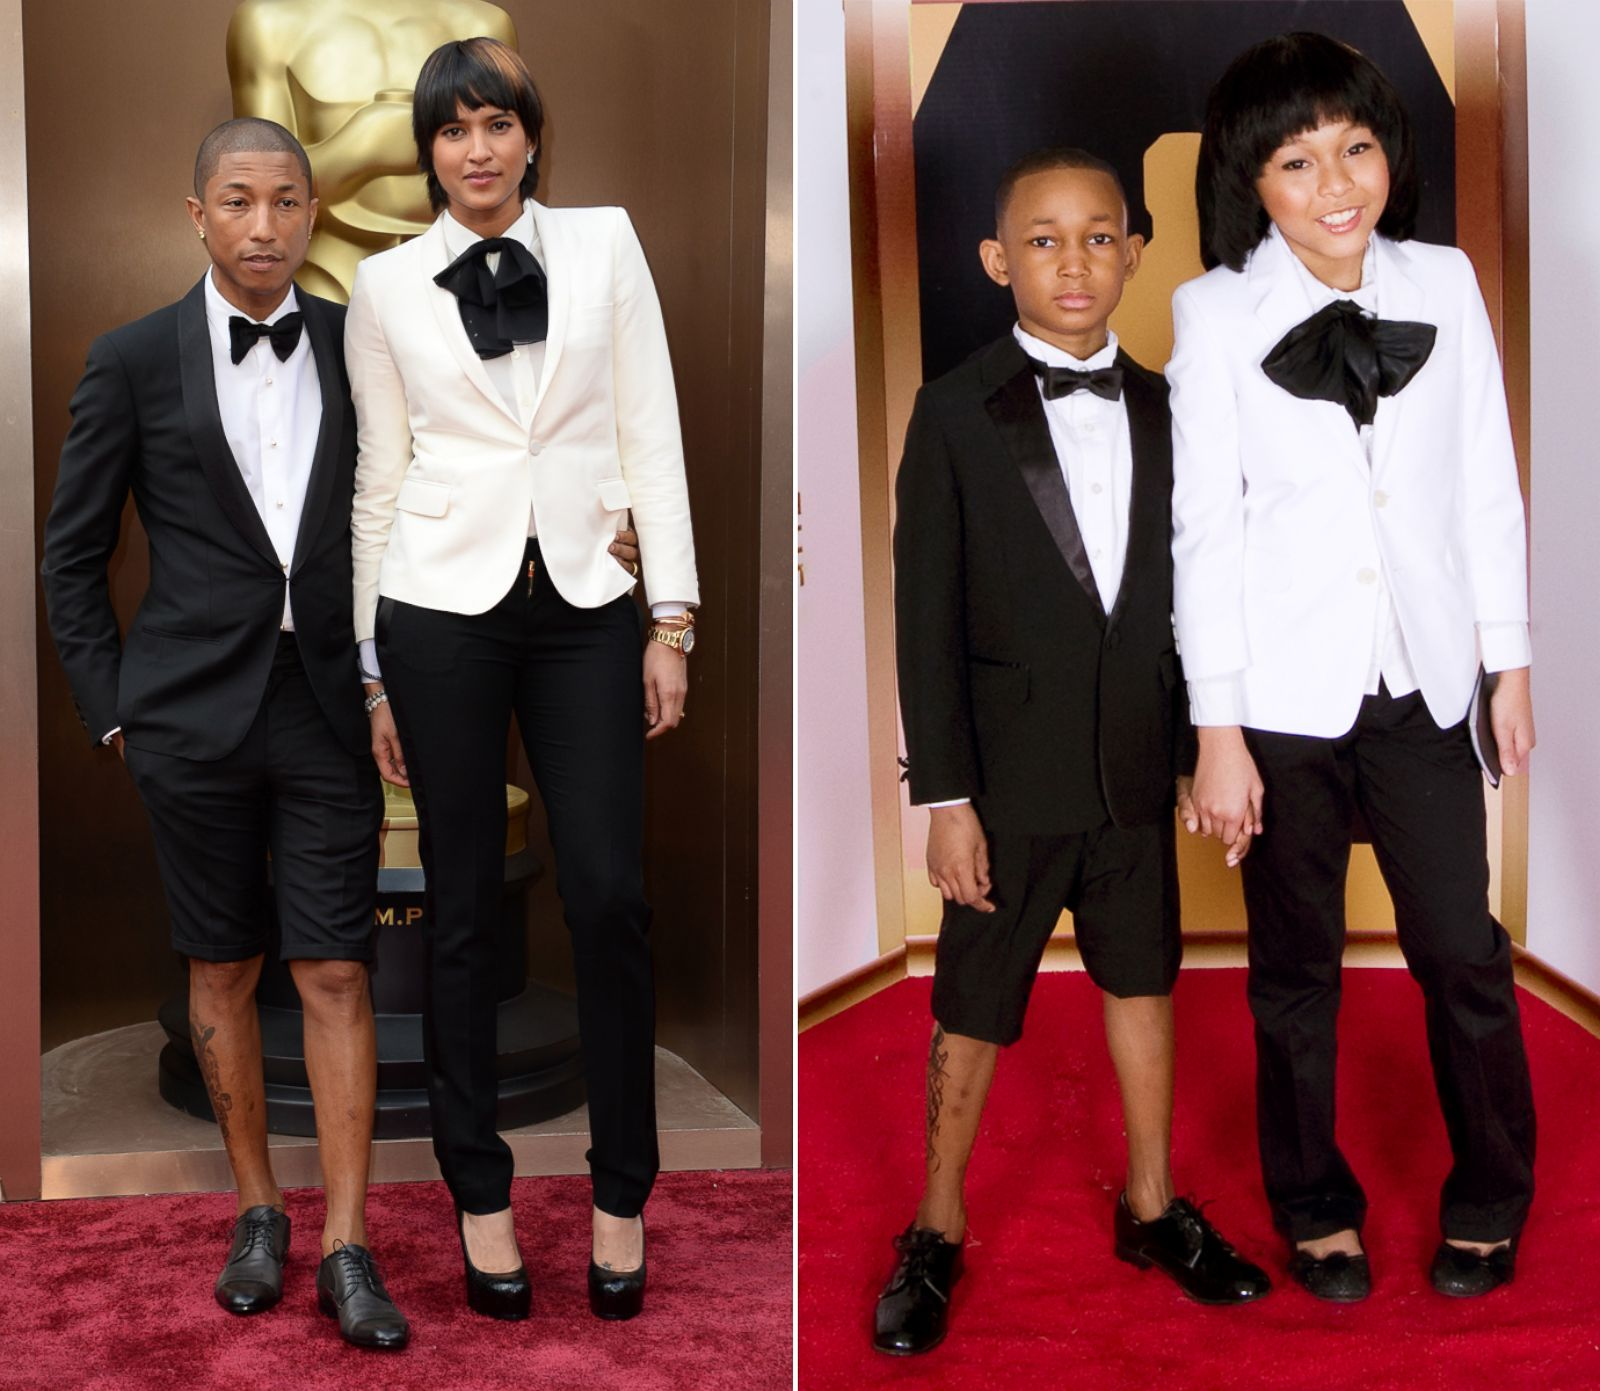 Kids Recreate Red Carpet Moments Photos | Image #3 - ABC News